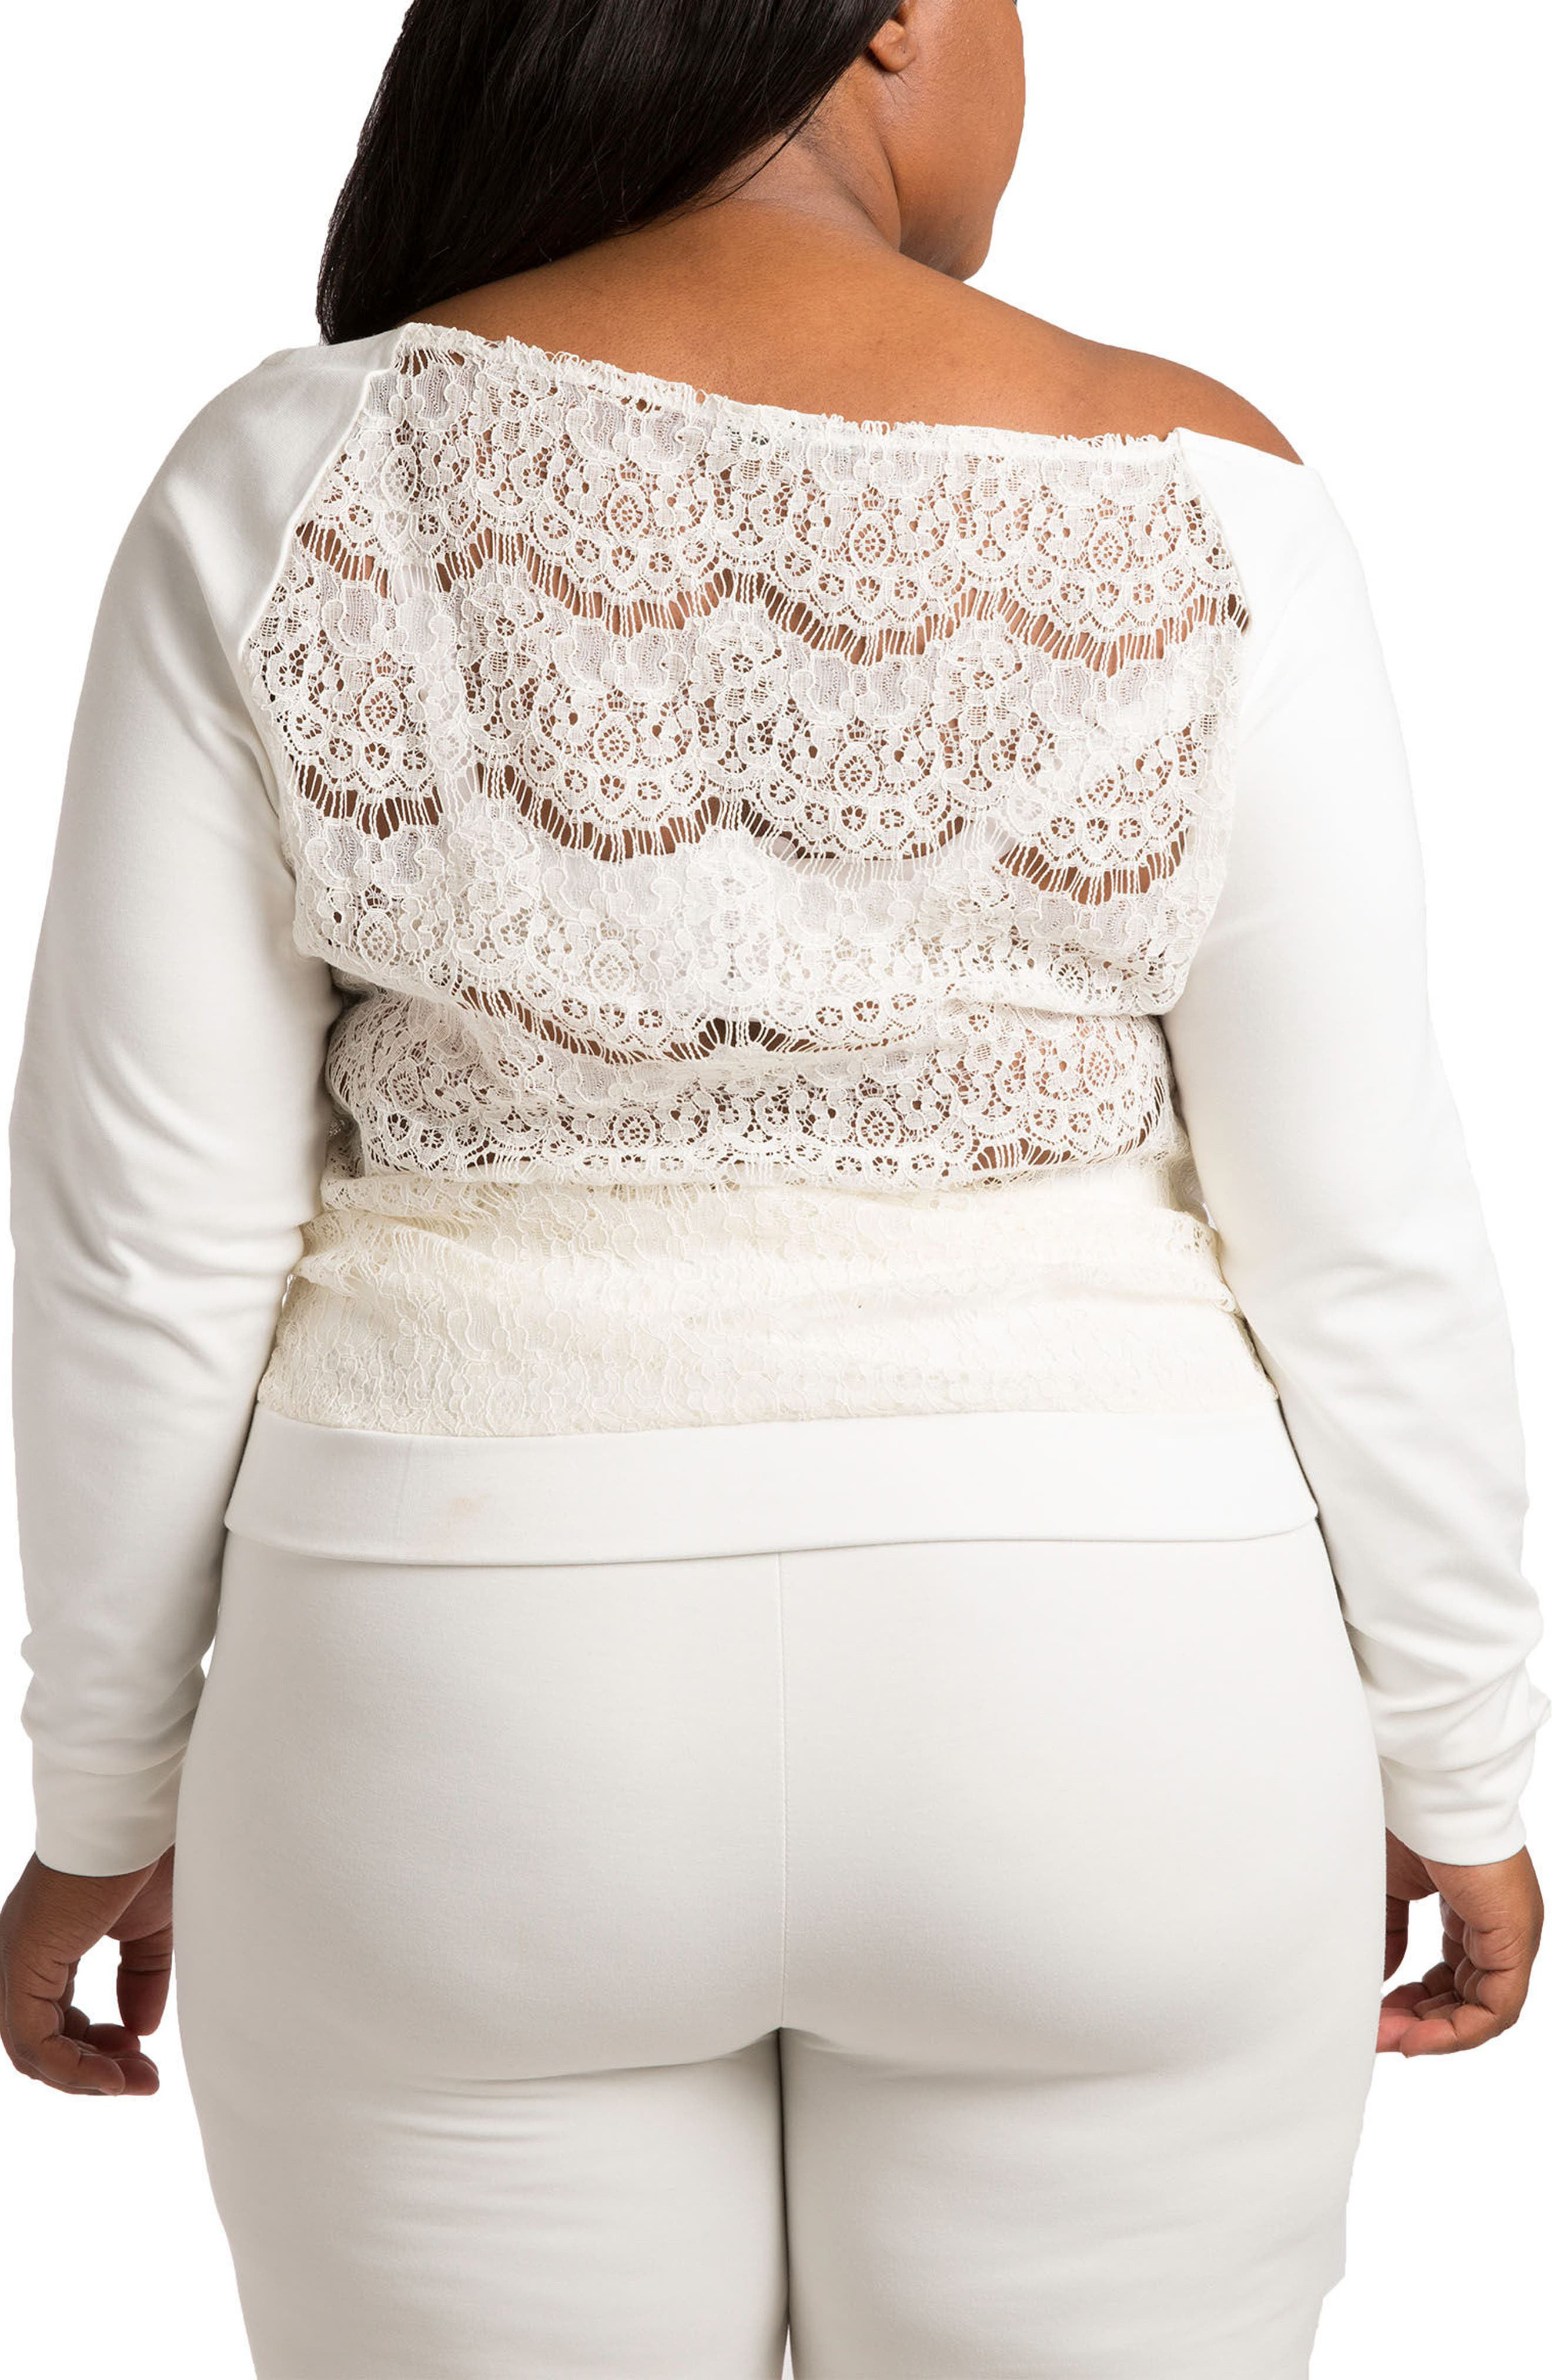 POETIC JUSTICE,                             Lace & Ponte Knit Top,                             Alternate thumbnail 2, color,                             WHITE